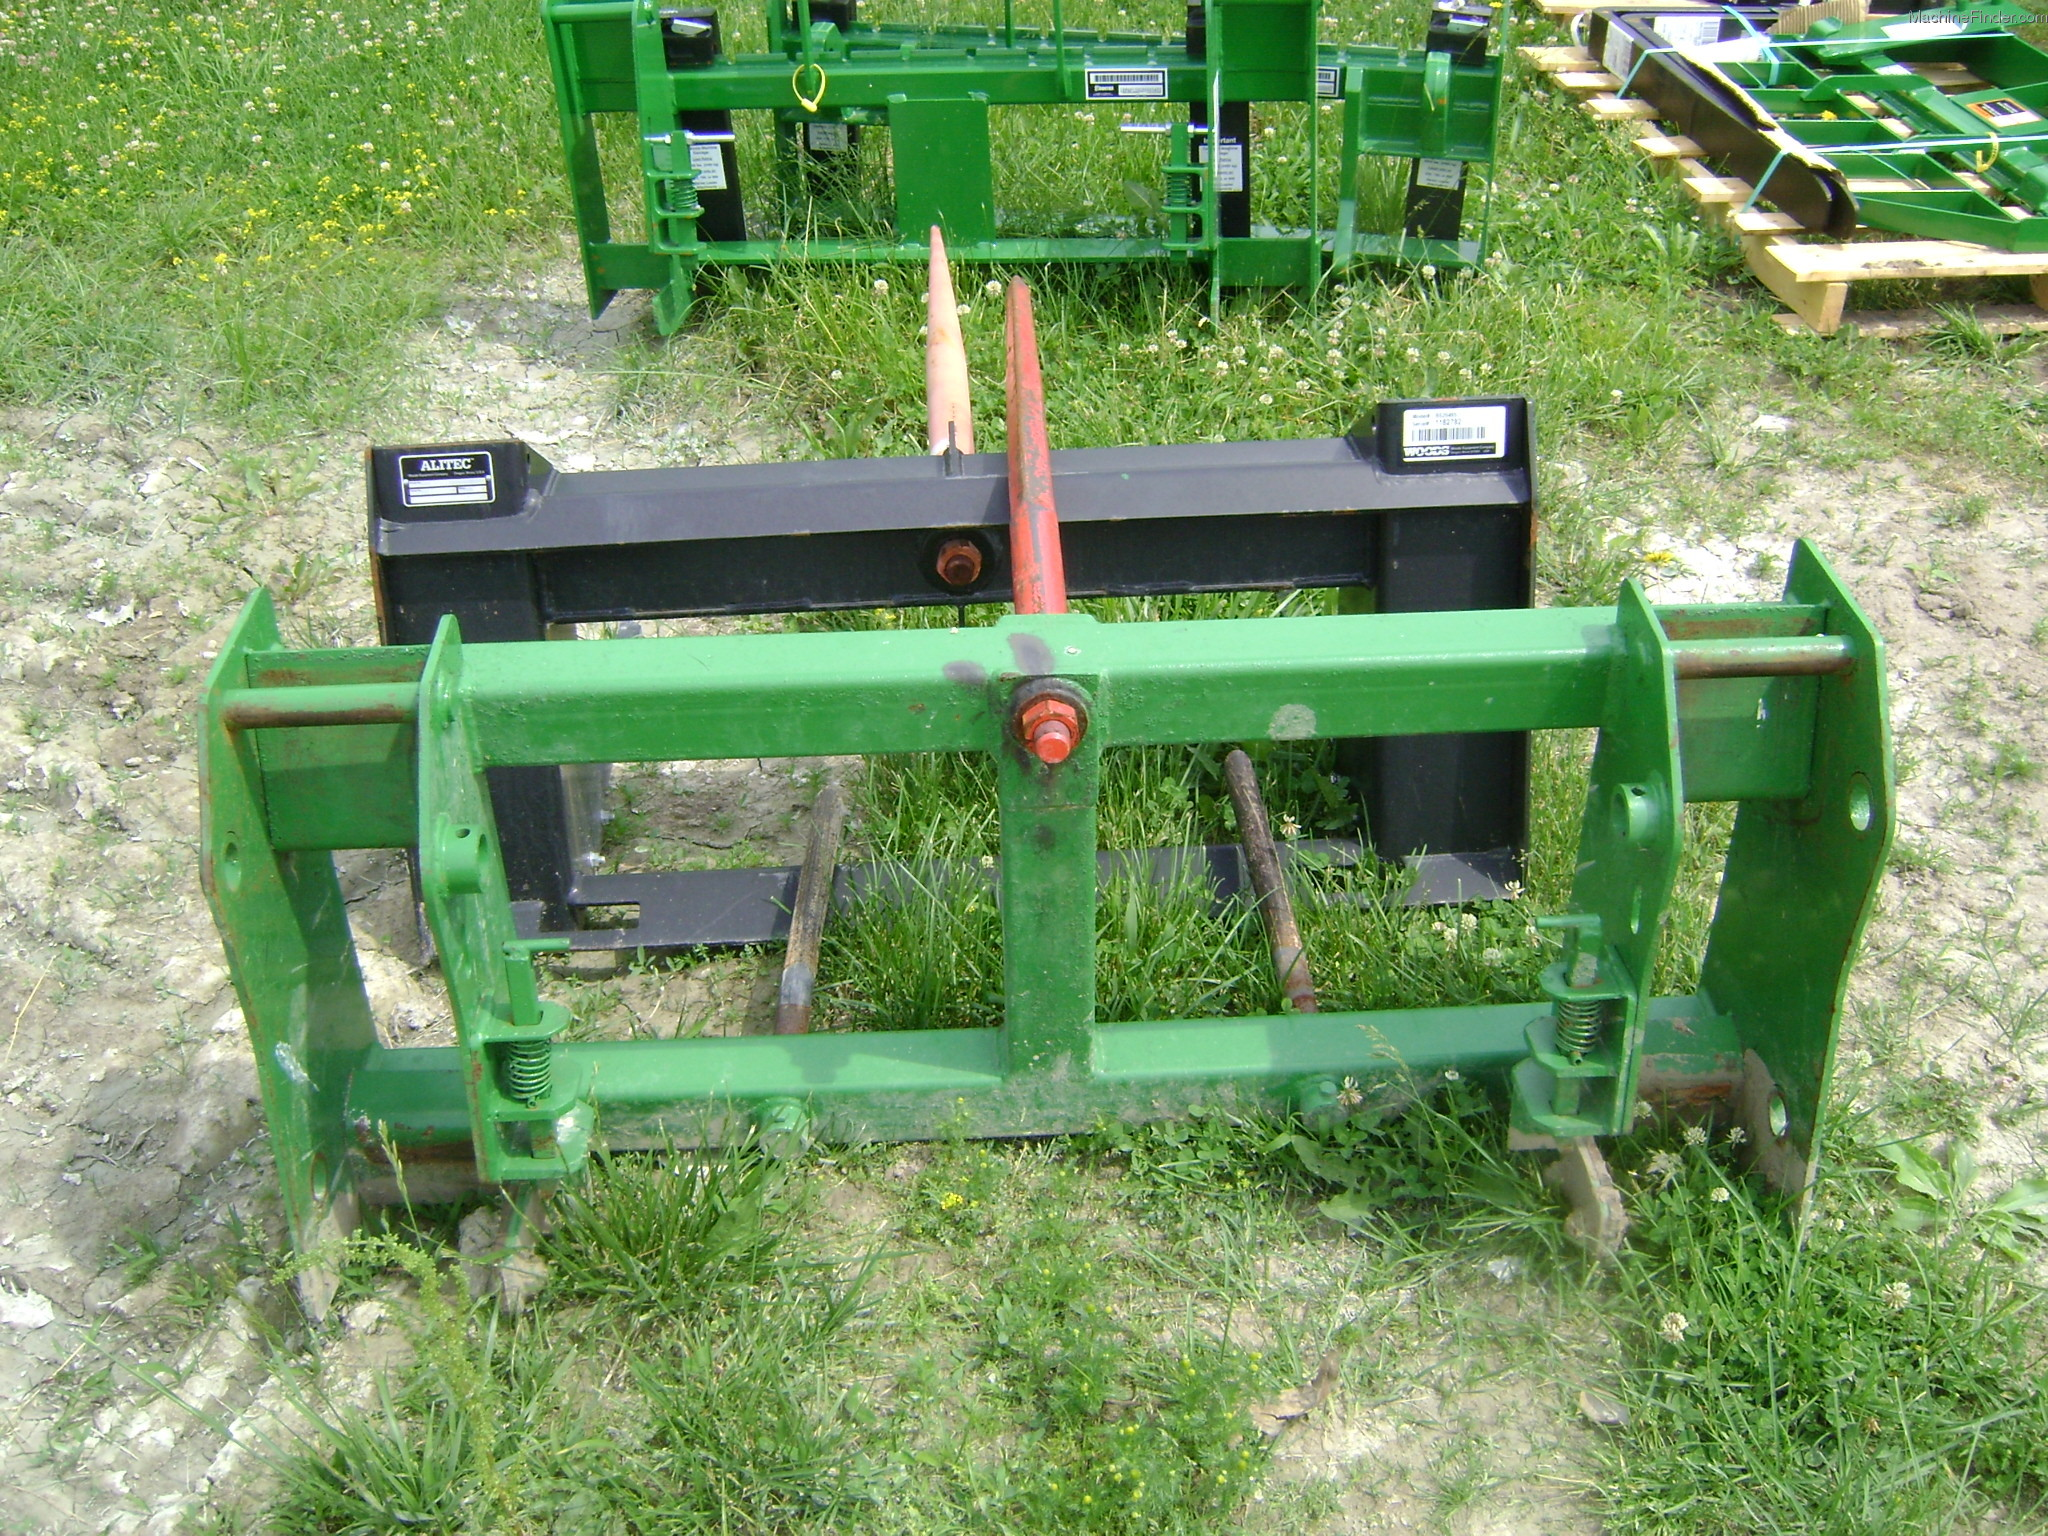 John Deere BALE SPEAR Hay Equipment - Handling and Transport - John ...